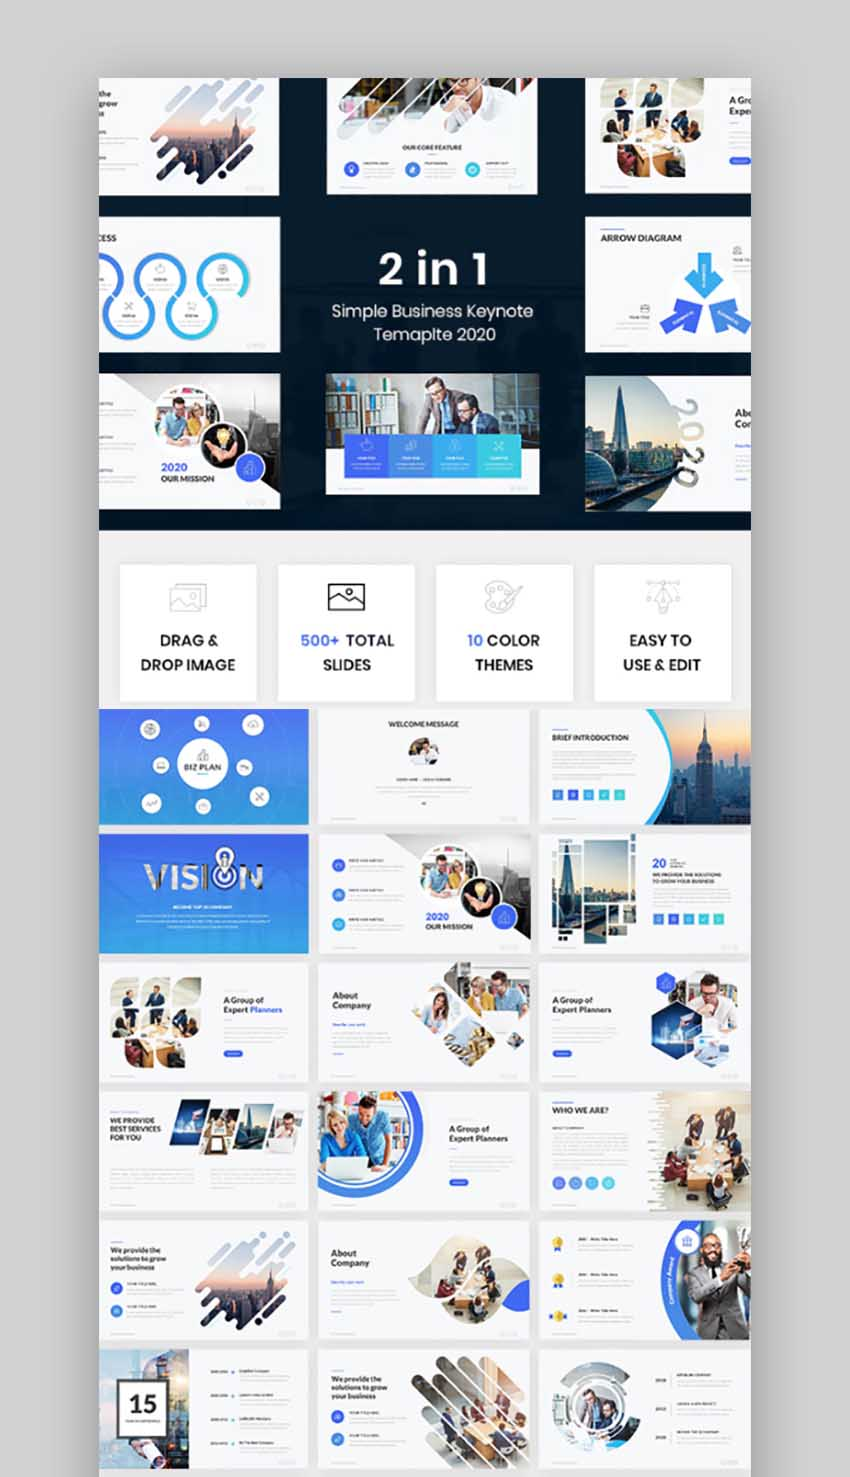 Bundle 2 in 1 Simple Business Keynote Template